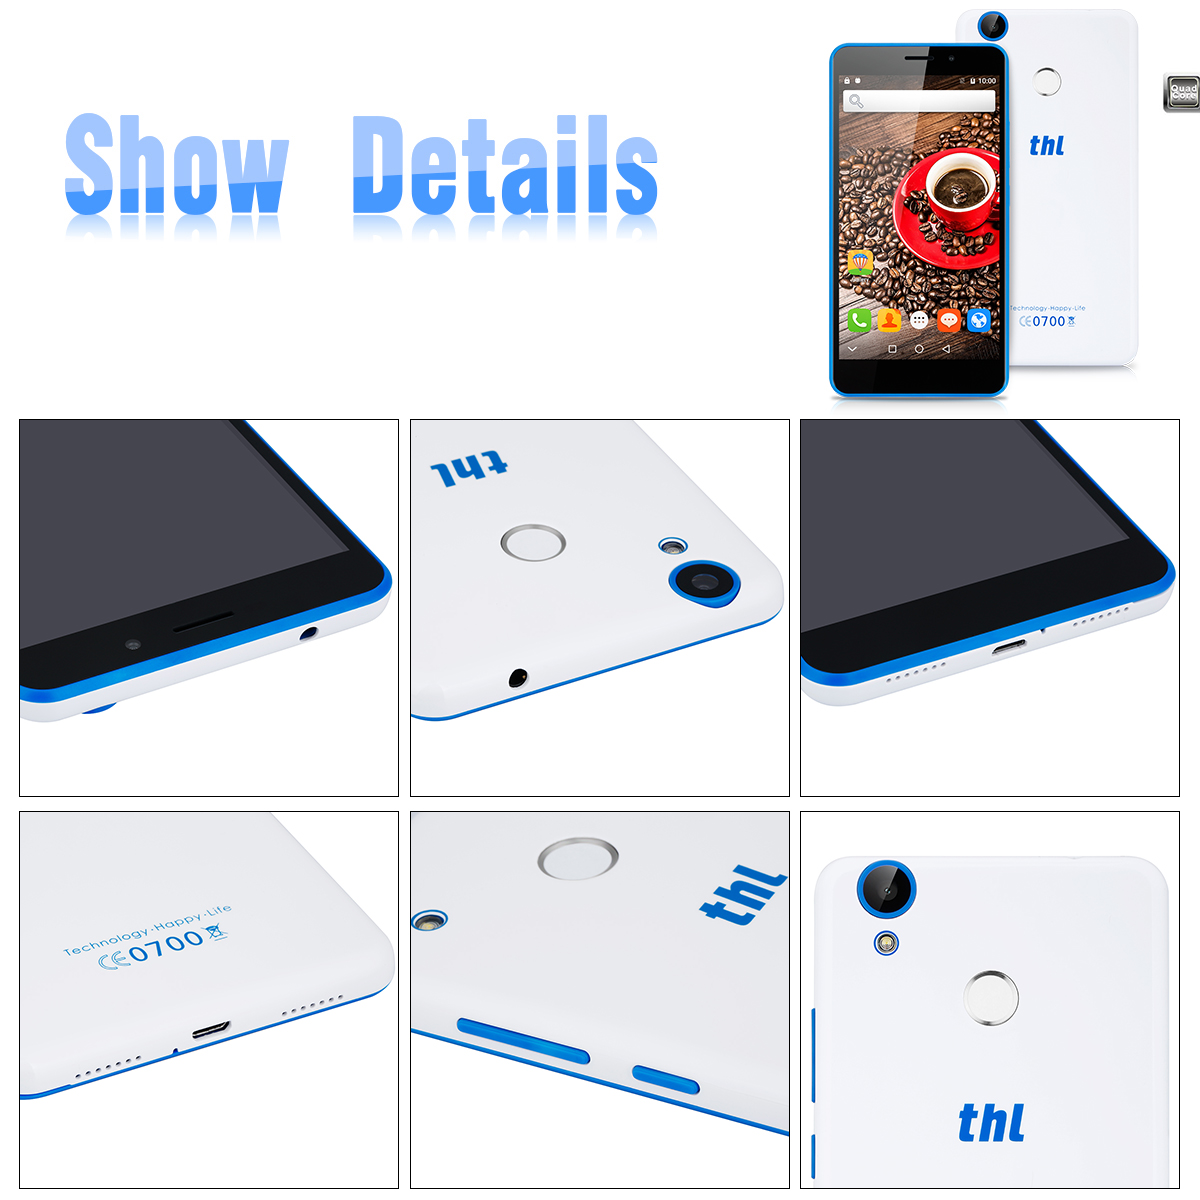 THL T9 4G 5.5 inch HD 1280 x 720 Pixels Android 6.0 MT6737 Quad Cores 1.3GHz 64 bit 1GB RAM 8GB ROM TF 5MP Back Camera 2MP Front Camera LED